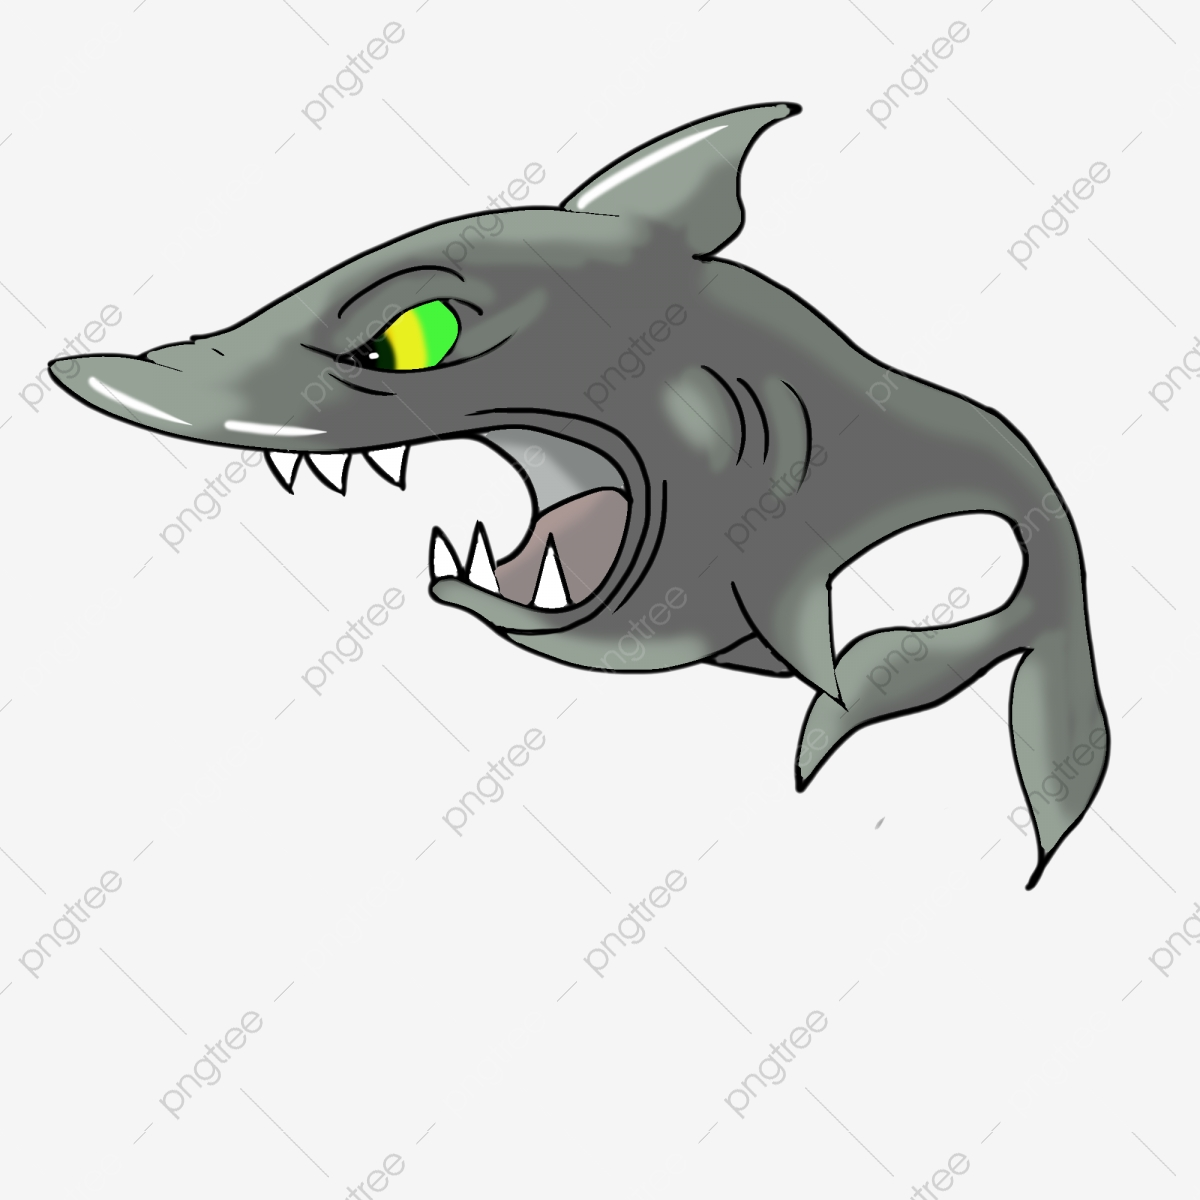 hight resolution of commercial use resource upgrade to premium plan and get license authorization upgradenow small shark shark clipart